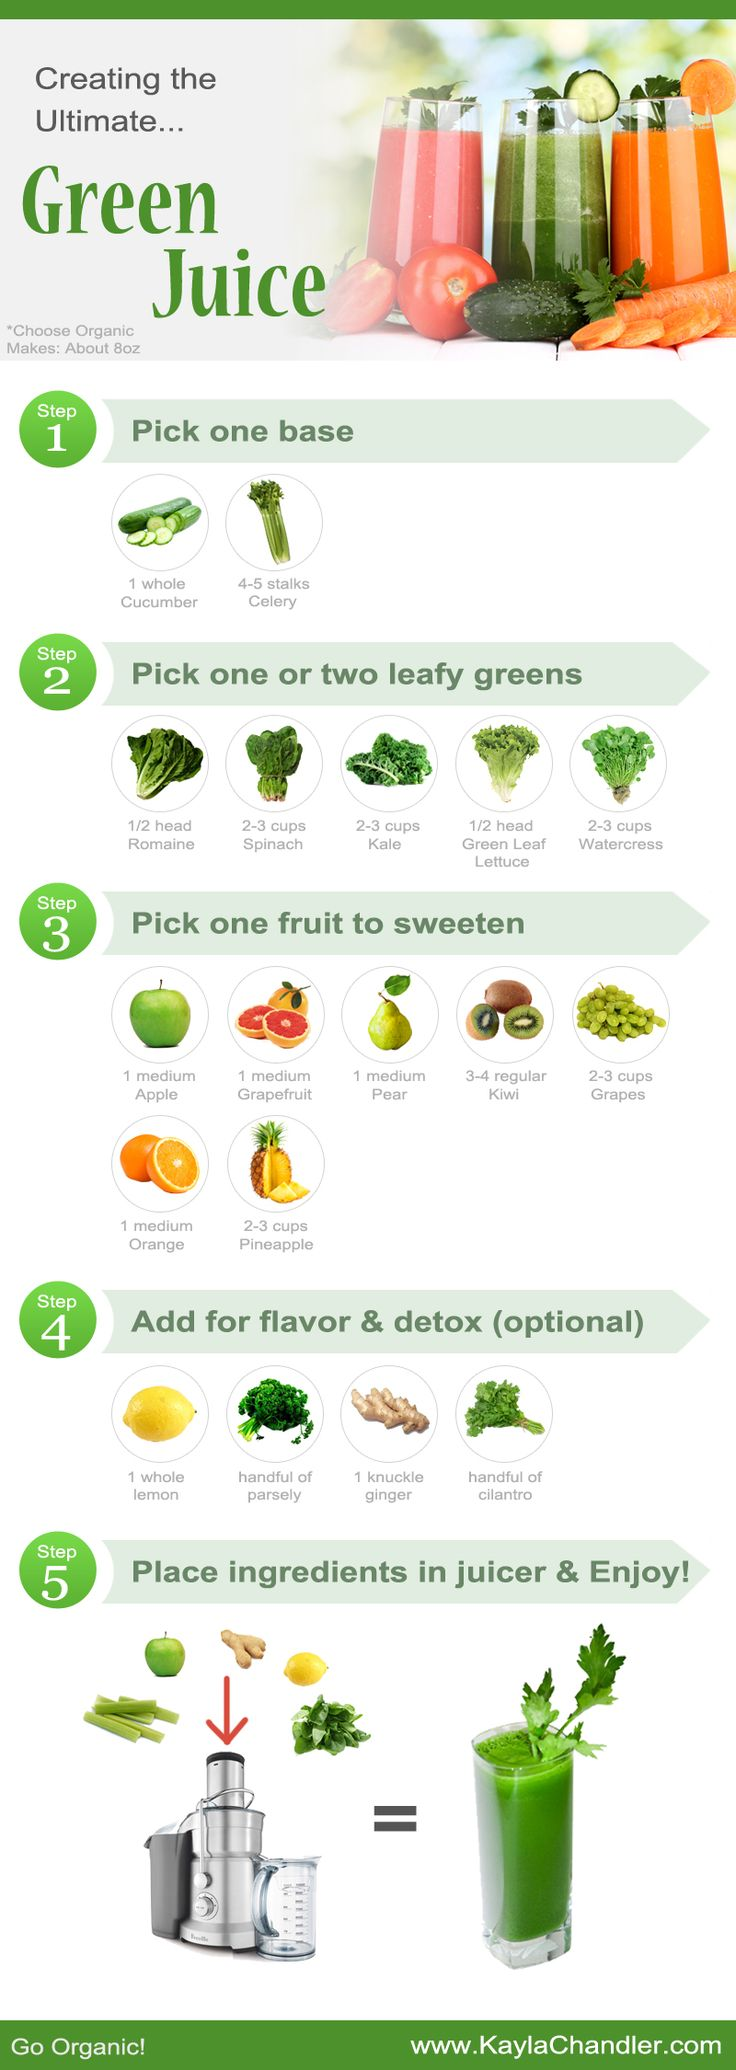 Easy guide to the ultimate green juice... Great for an easy reference! #juicing #juice @Booklady